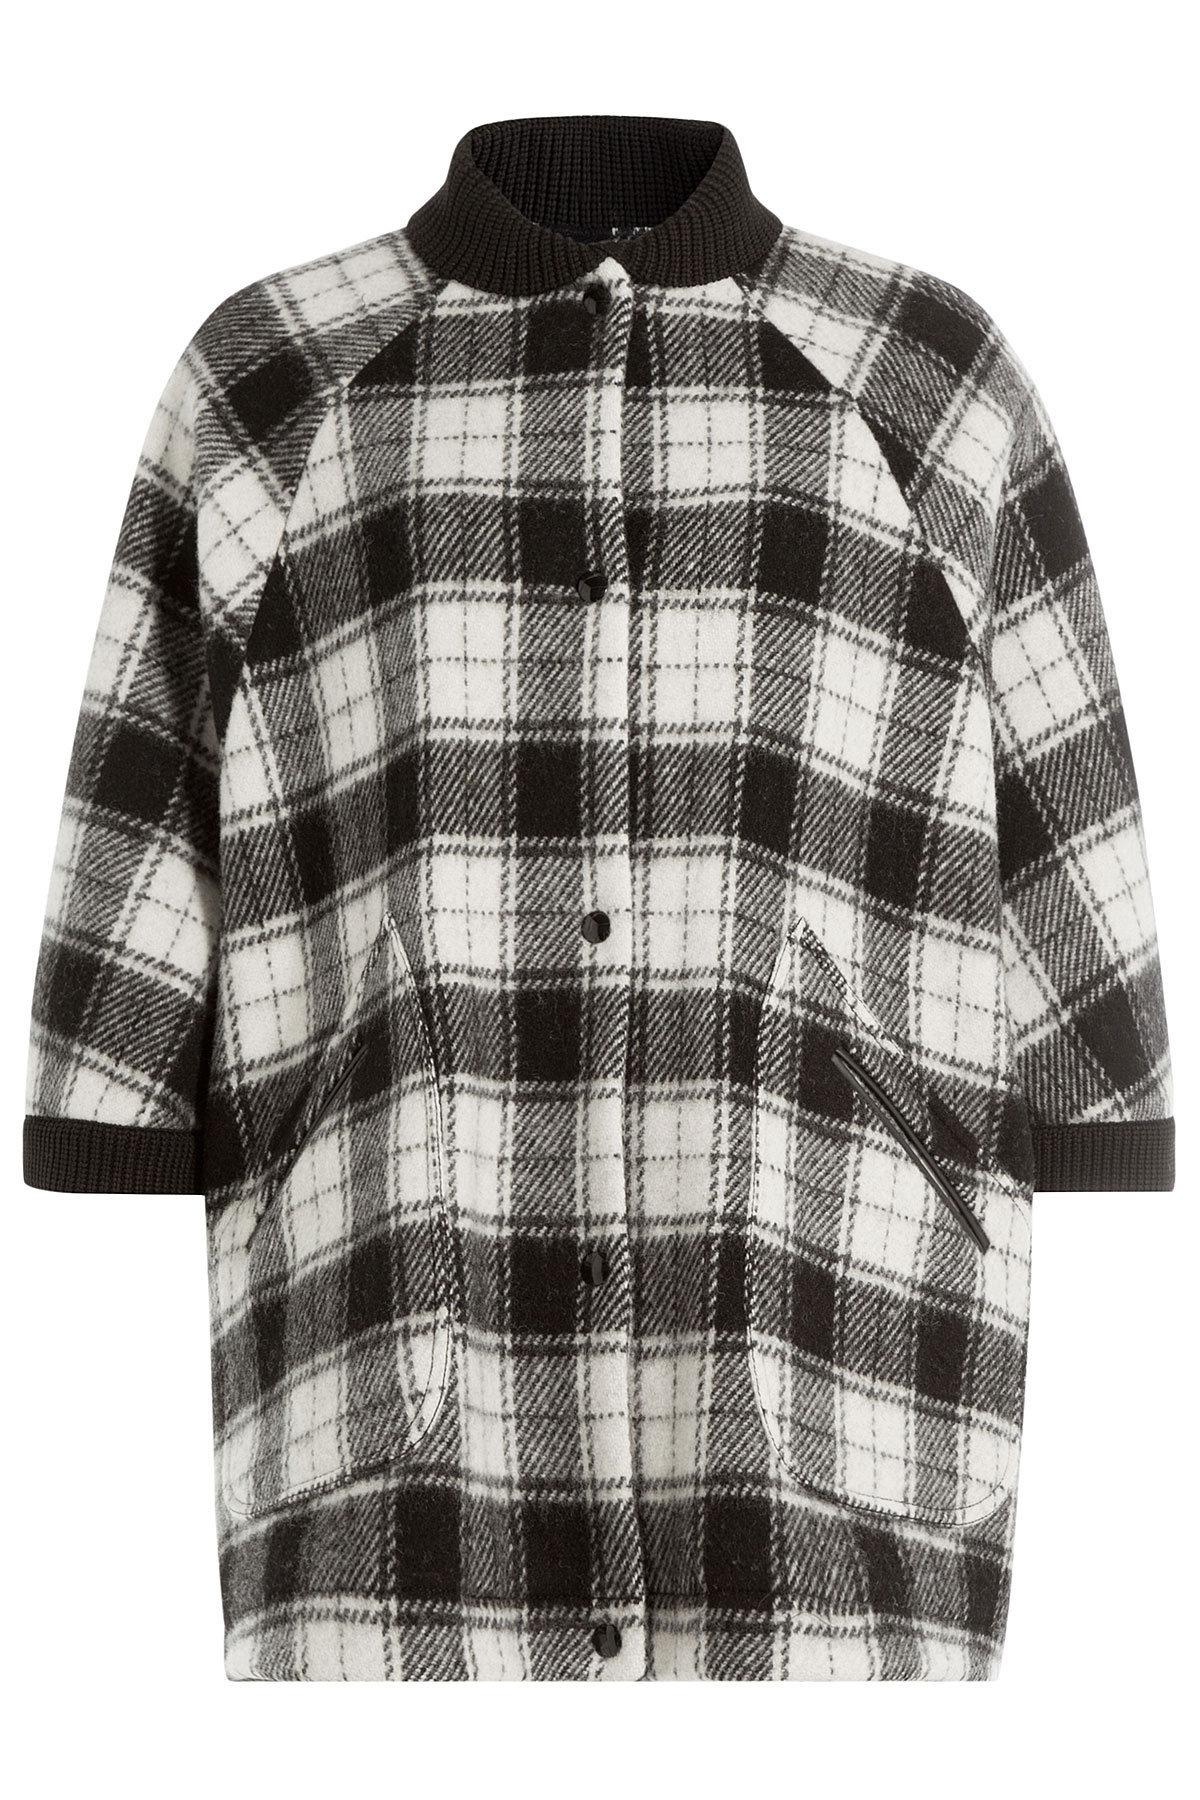 a5180b346d3e M Missoni Wool Plaid Short Sleeve Cape in White - Lyst